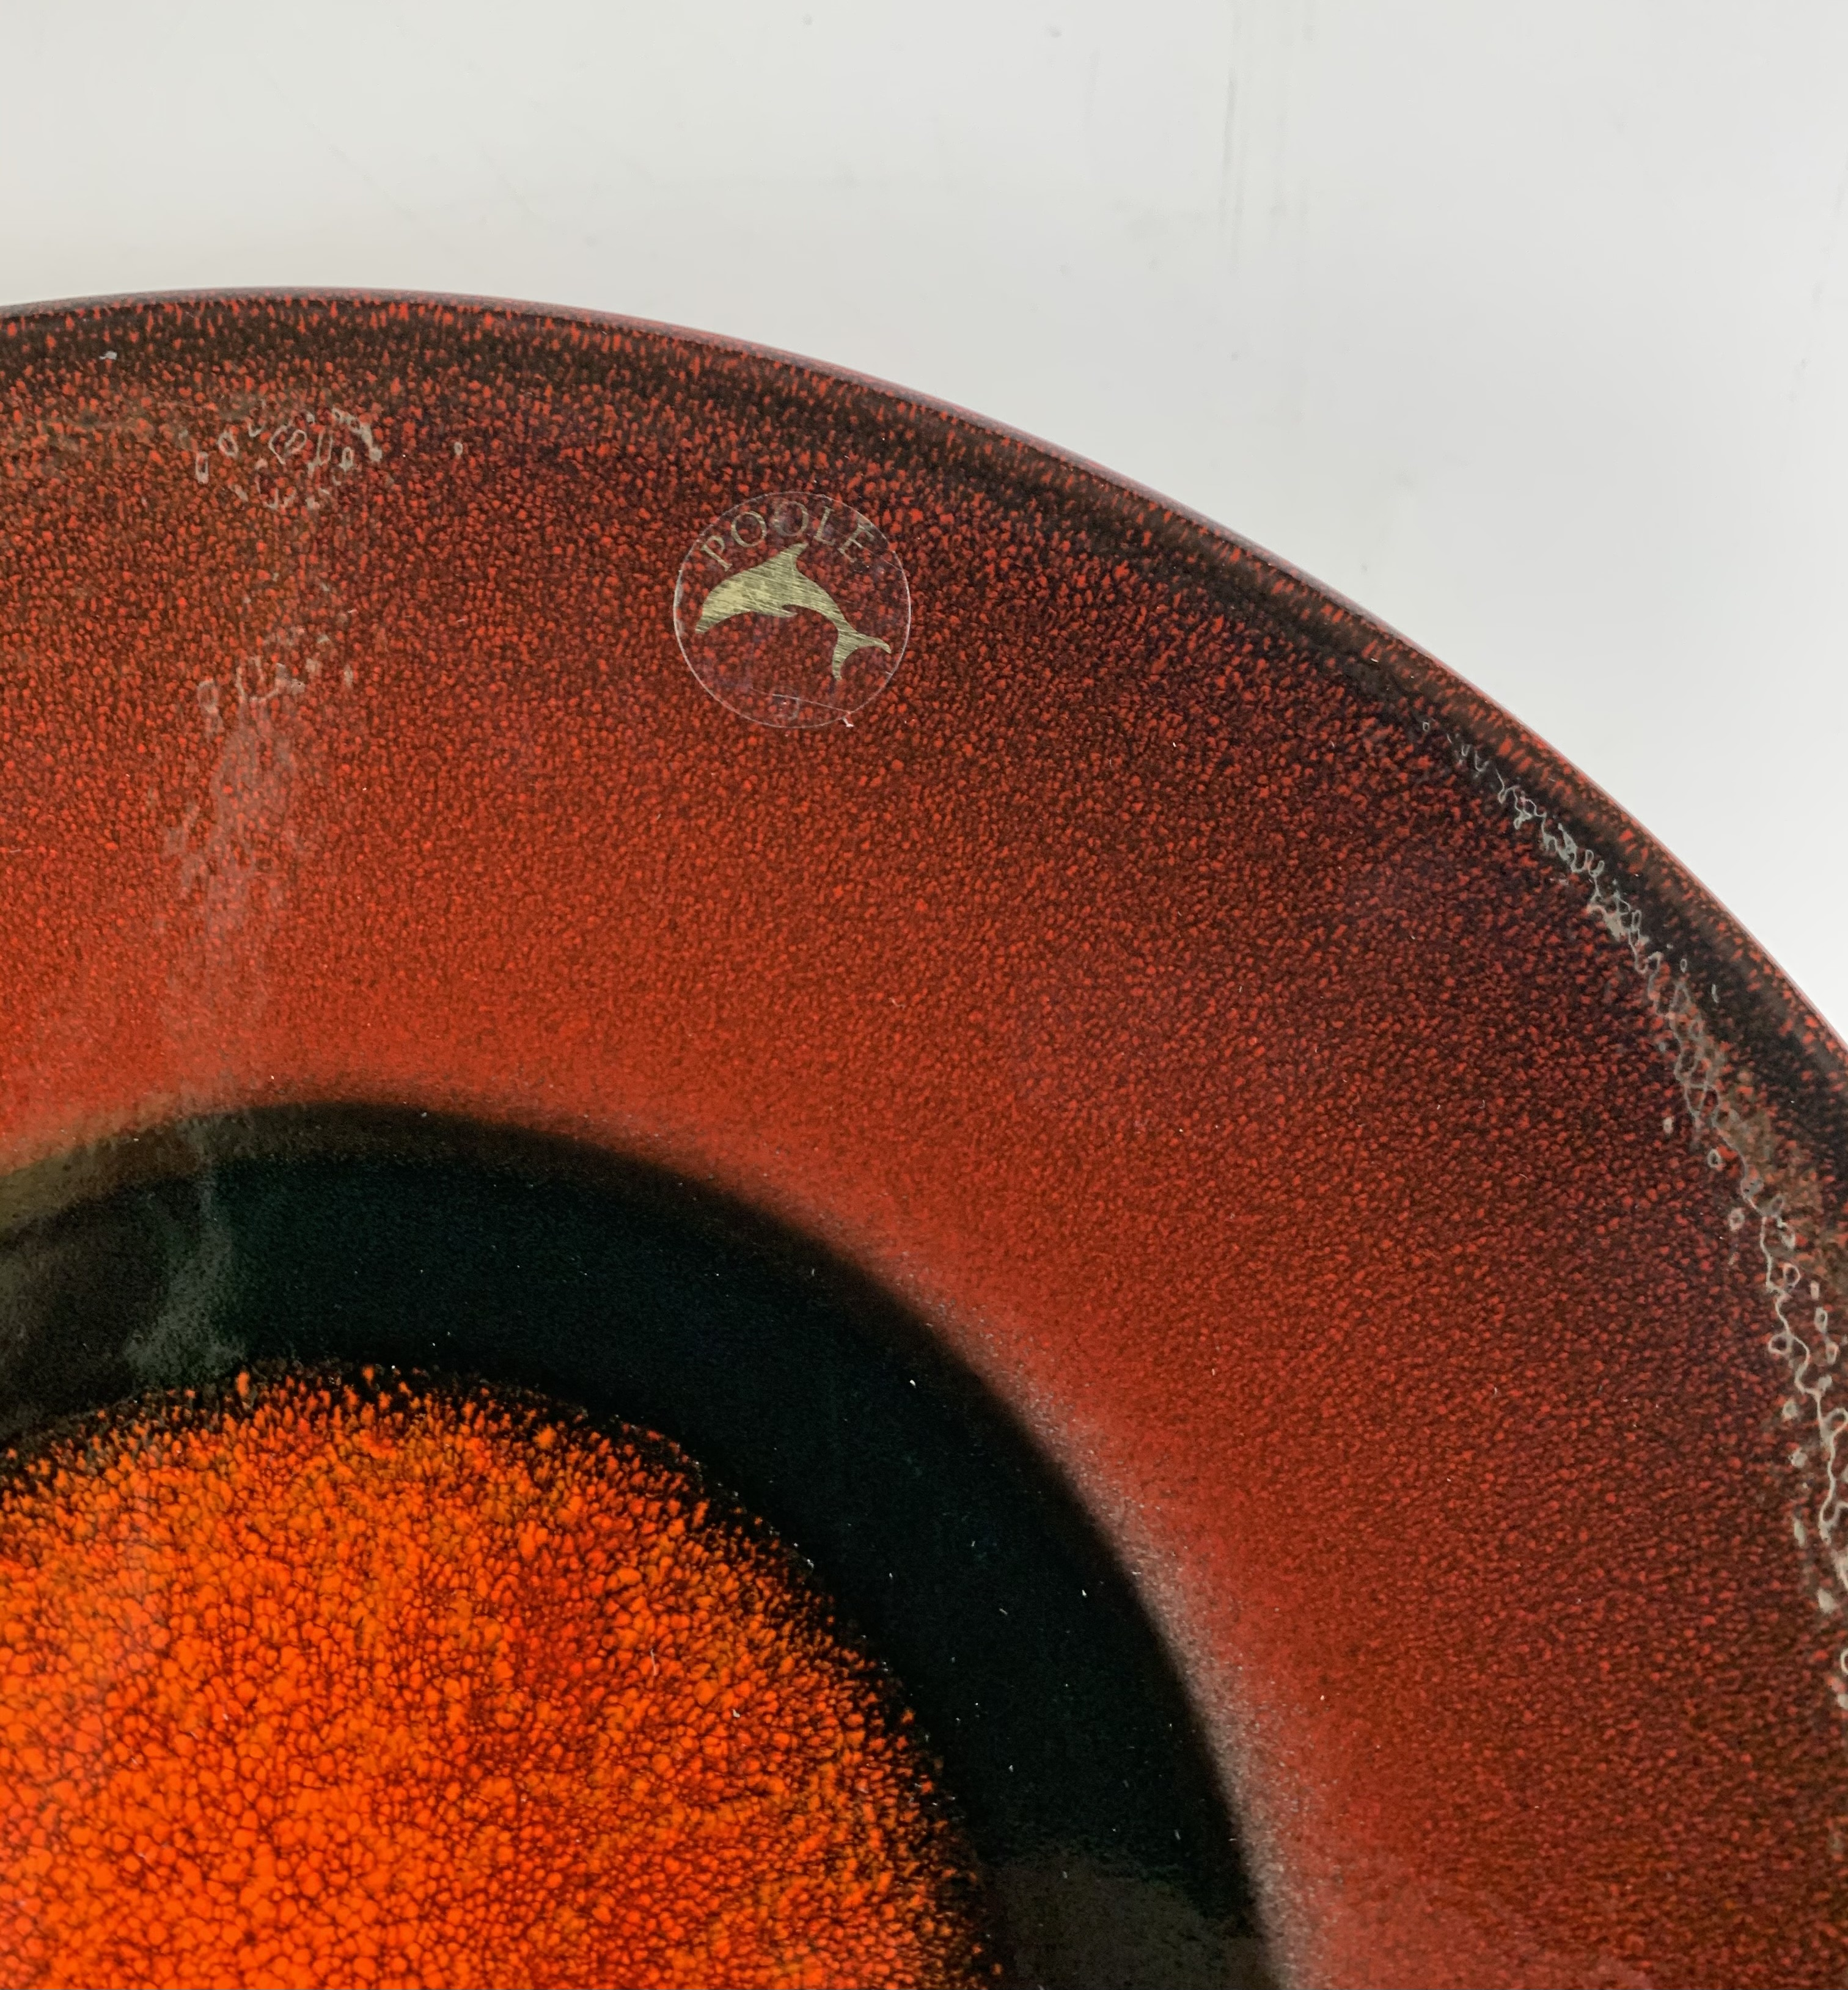 """Limited edition Poole plate, Mars, to mark the Alignment of the Planets 2000, 10.5"""" diameter, no - Image 5 of 7"""